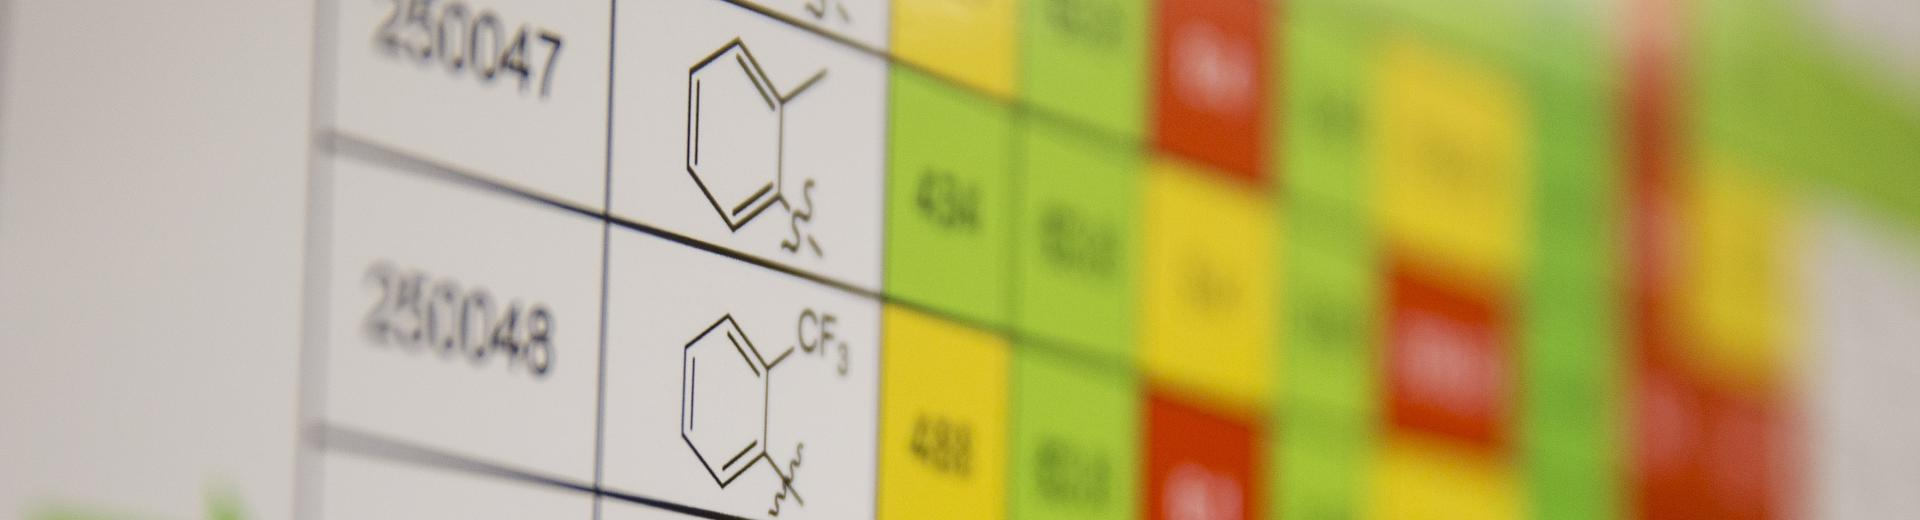 Image of a red, yellow and green pharmaceutical chart.